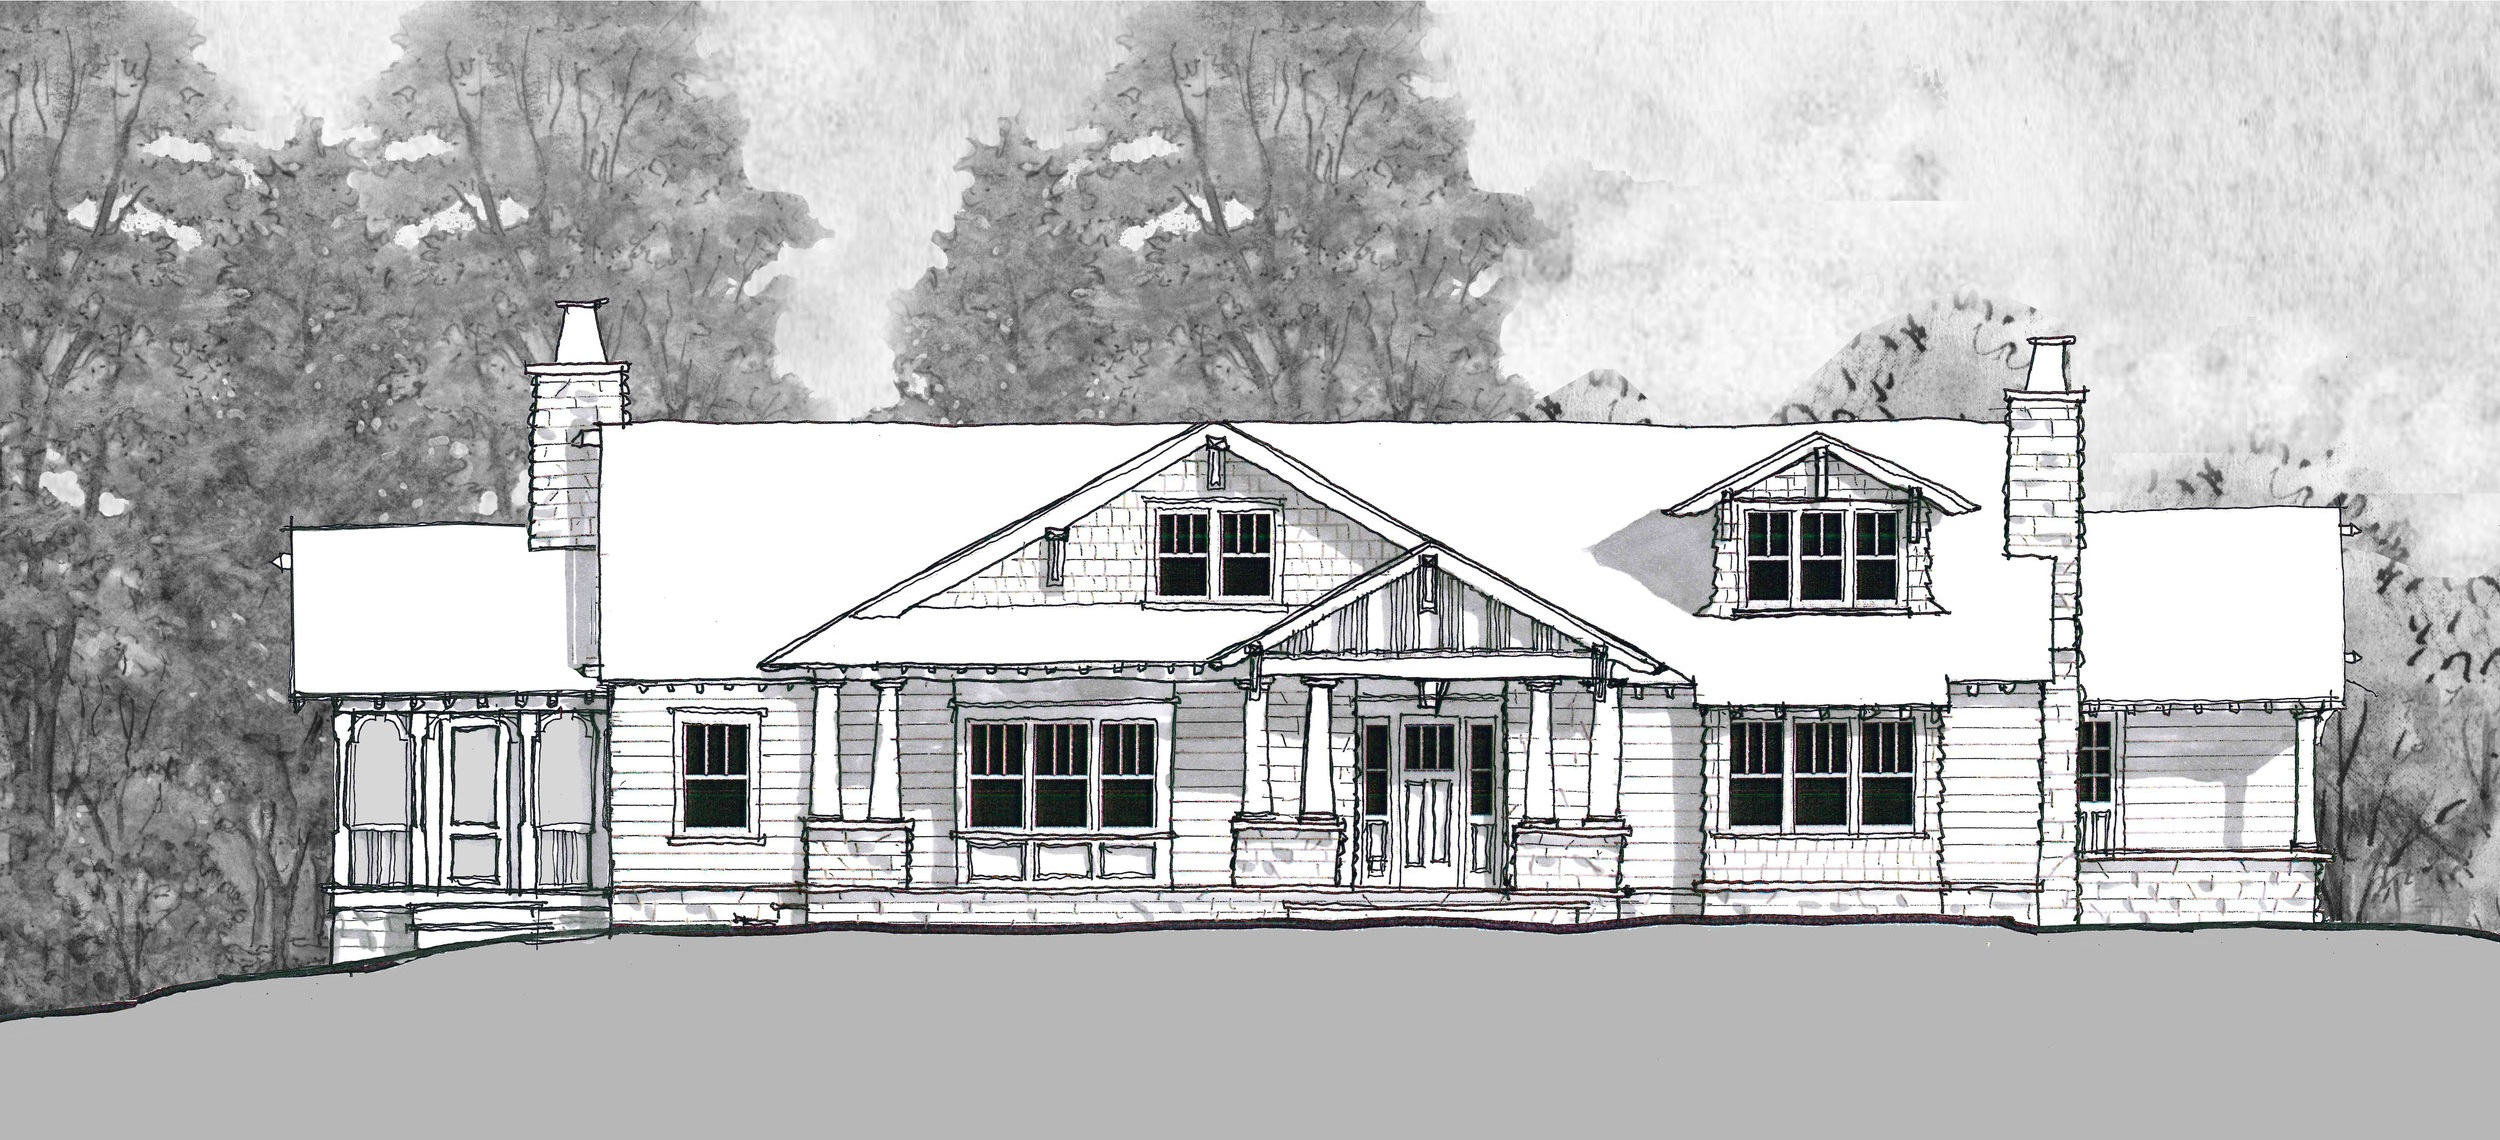 Proposed Front Facade to a former Ranch Style home in South Orange, NJ